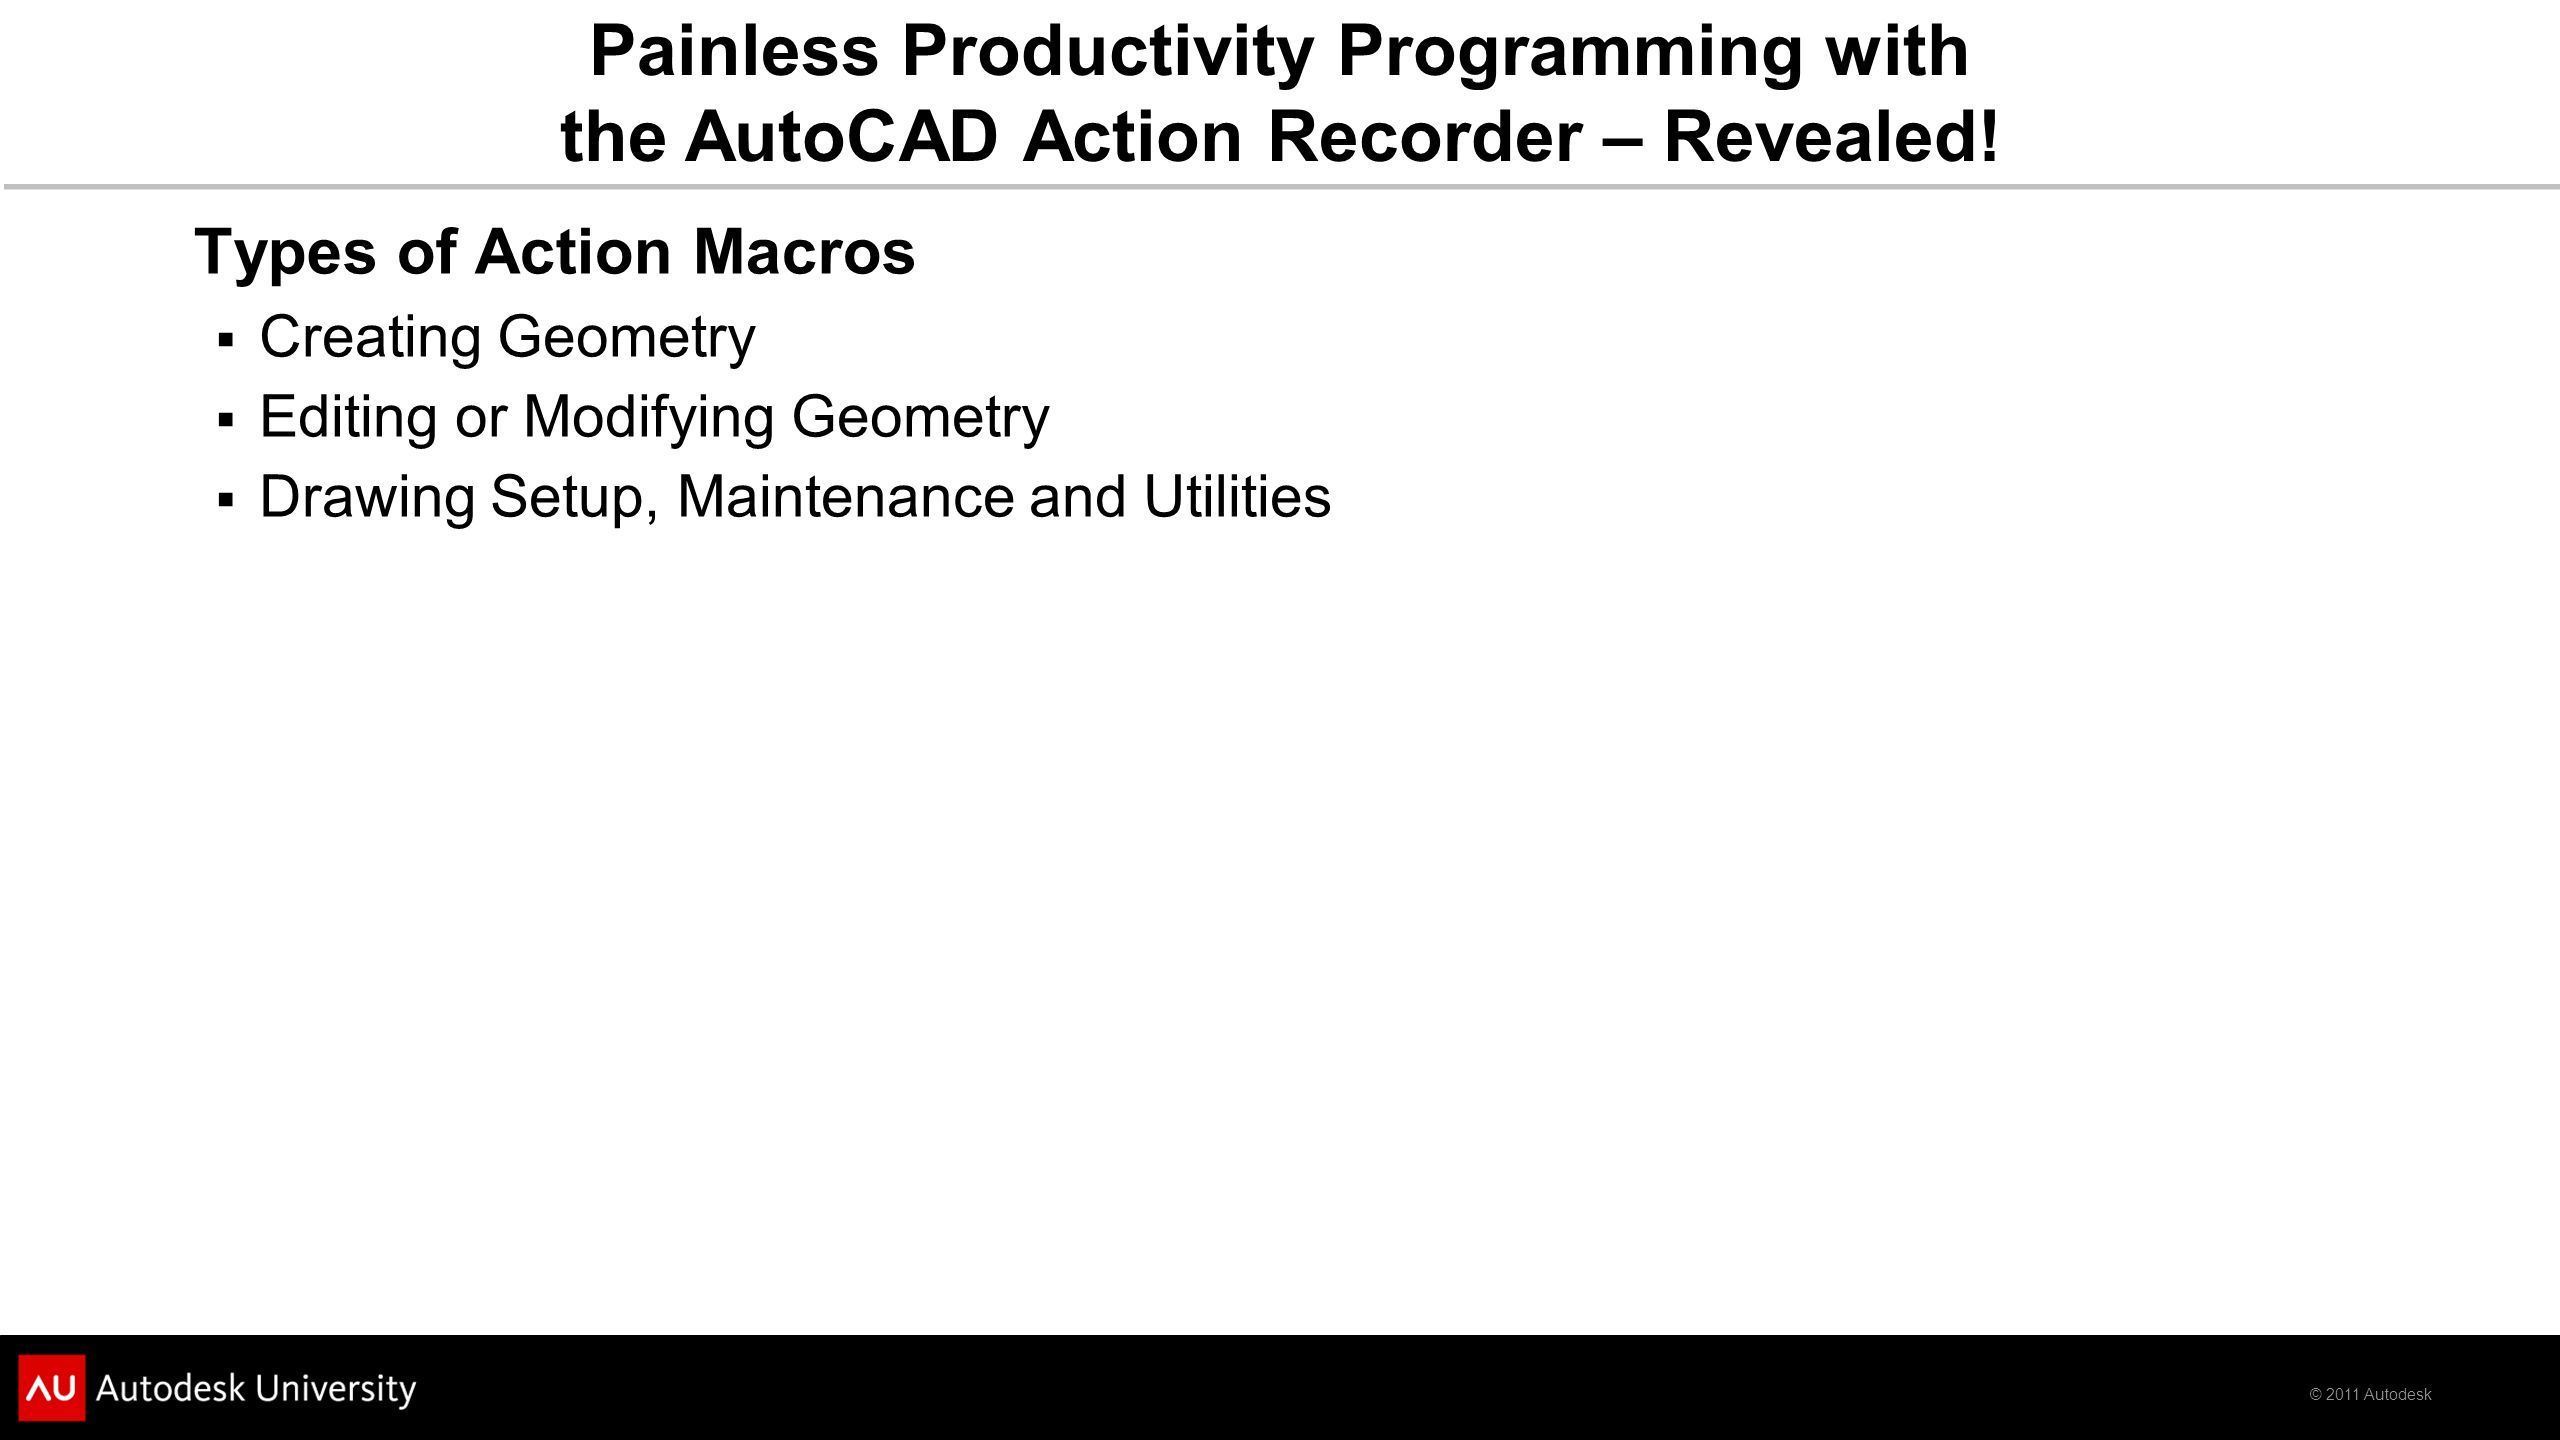 2011 Autodesk Painless Productivity Programming with the